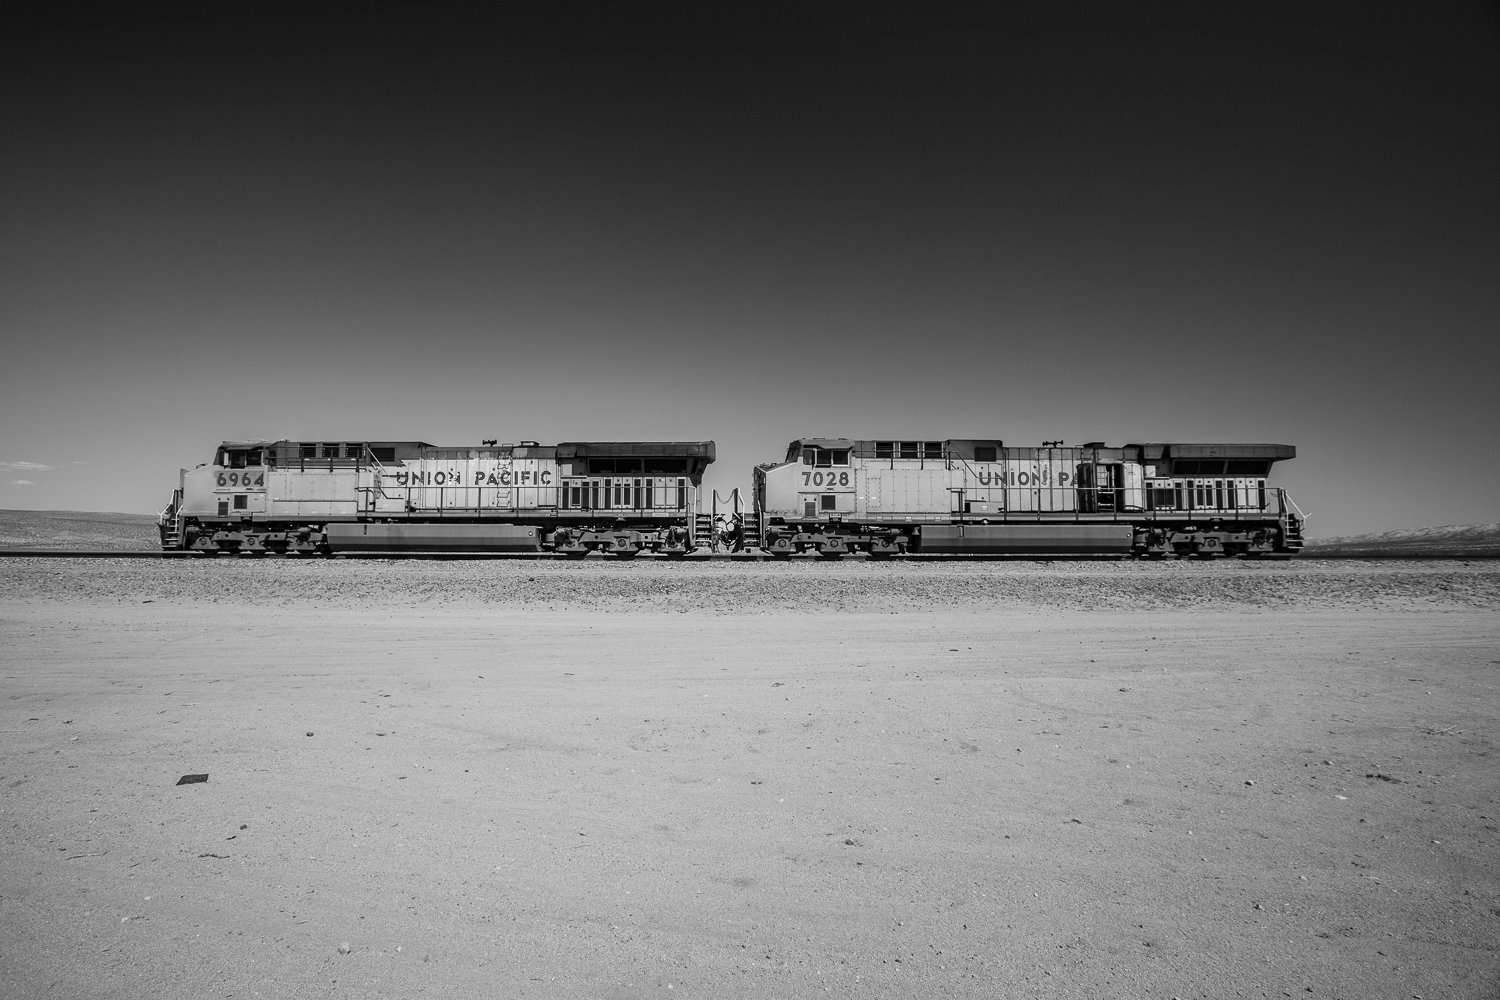 Two abandoned Union Pacific train engines in the California desert